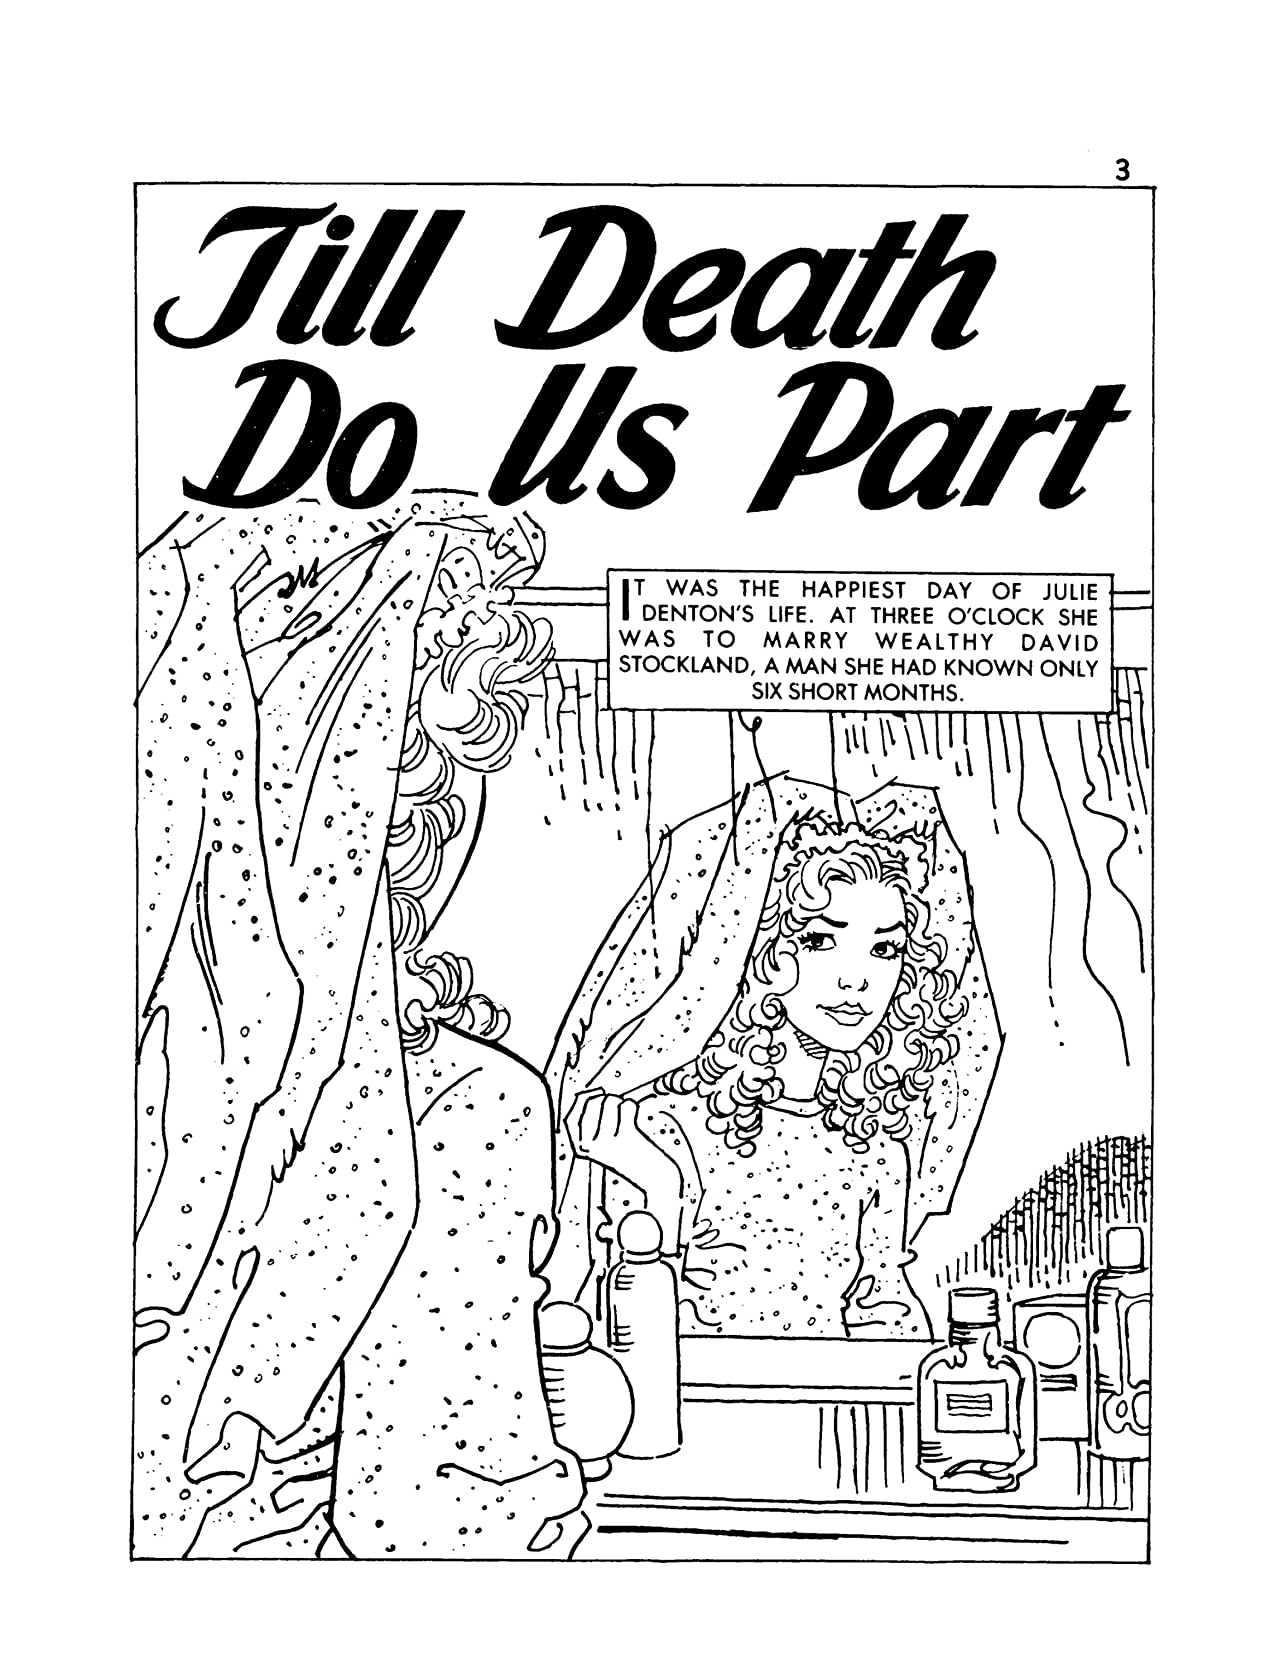 STAR - Love Stories In Pictures #3: Till Death Us Do Part